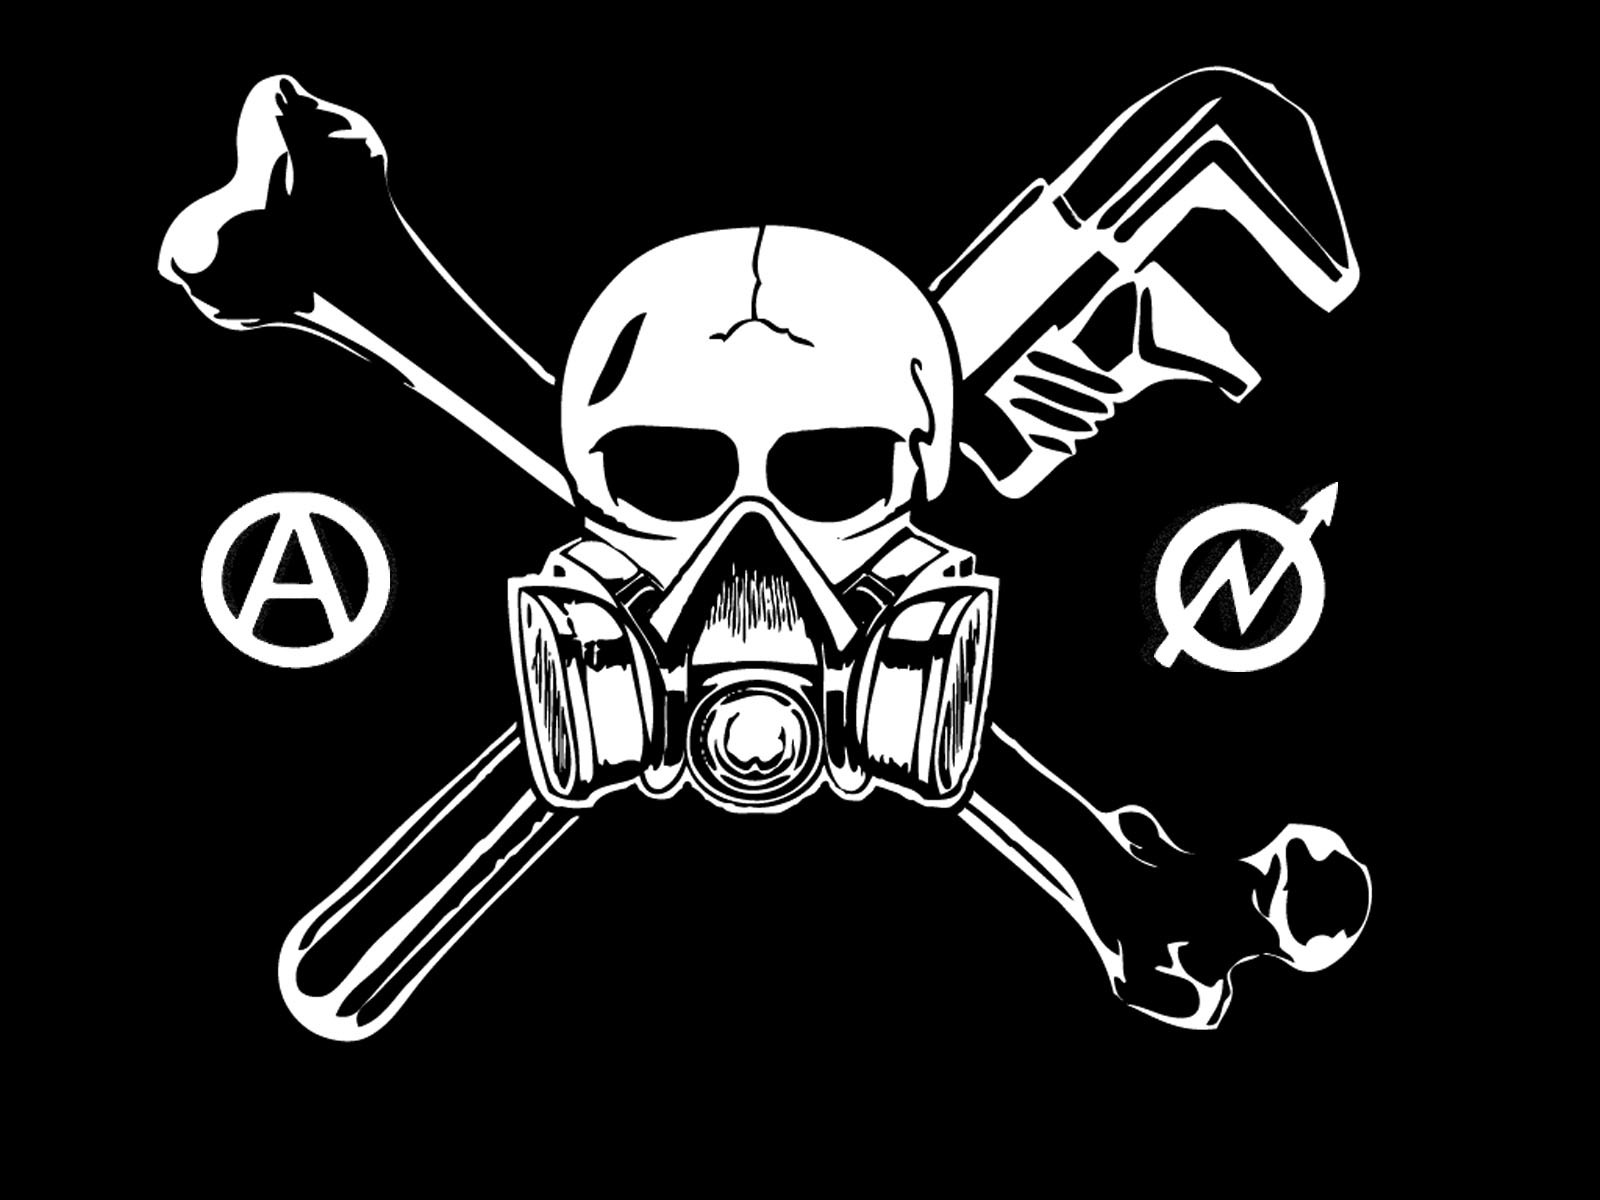 anarchist squatters survivalists who resist state and